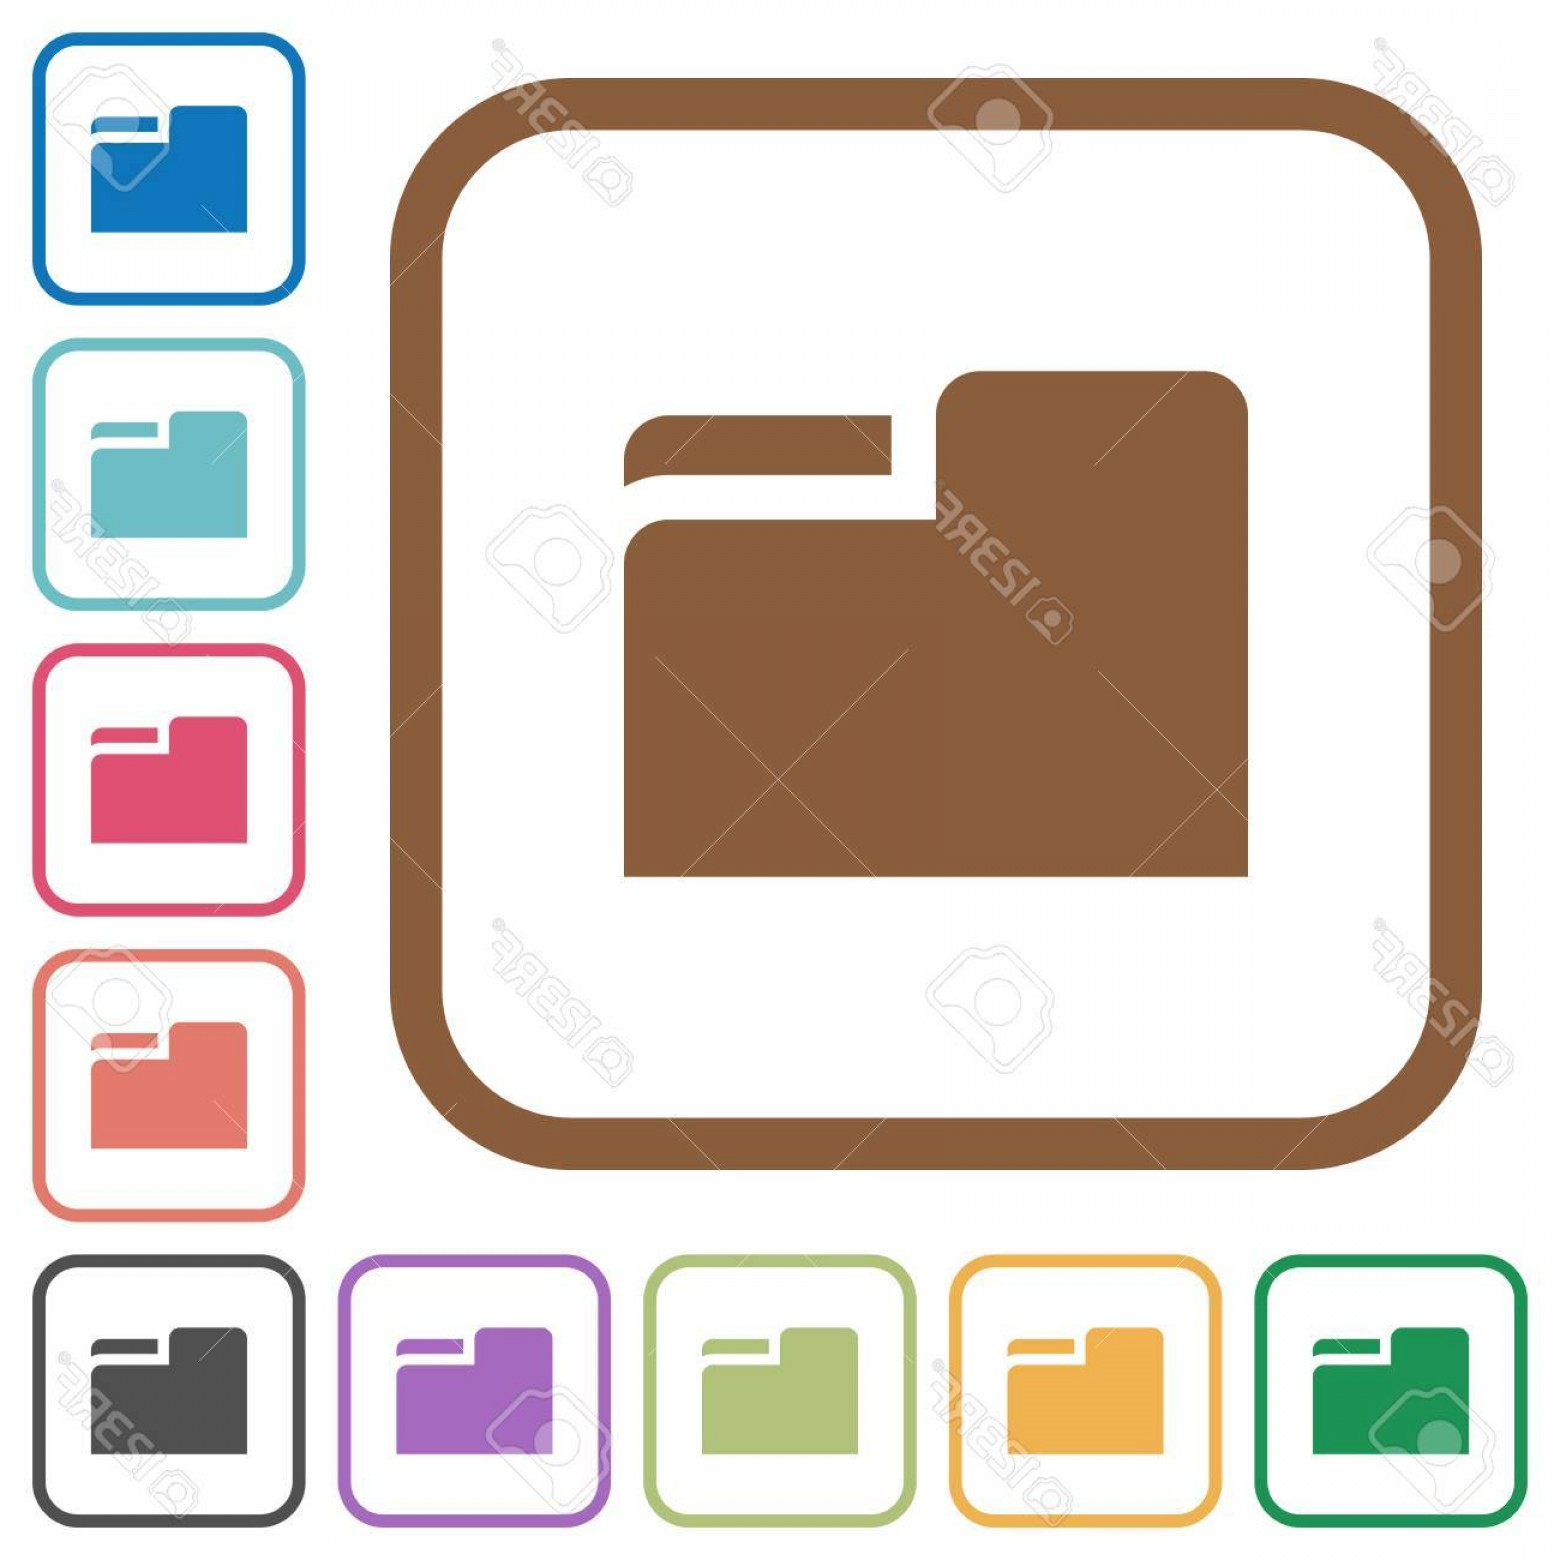 Folder Tab Vectors: Photostock Vector Tab Folder Simple Icons In Color Rounded Square Frames On White Background